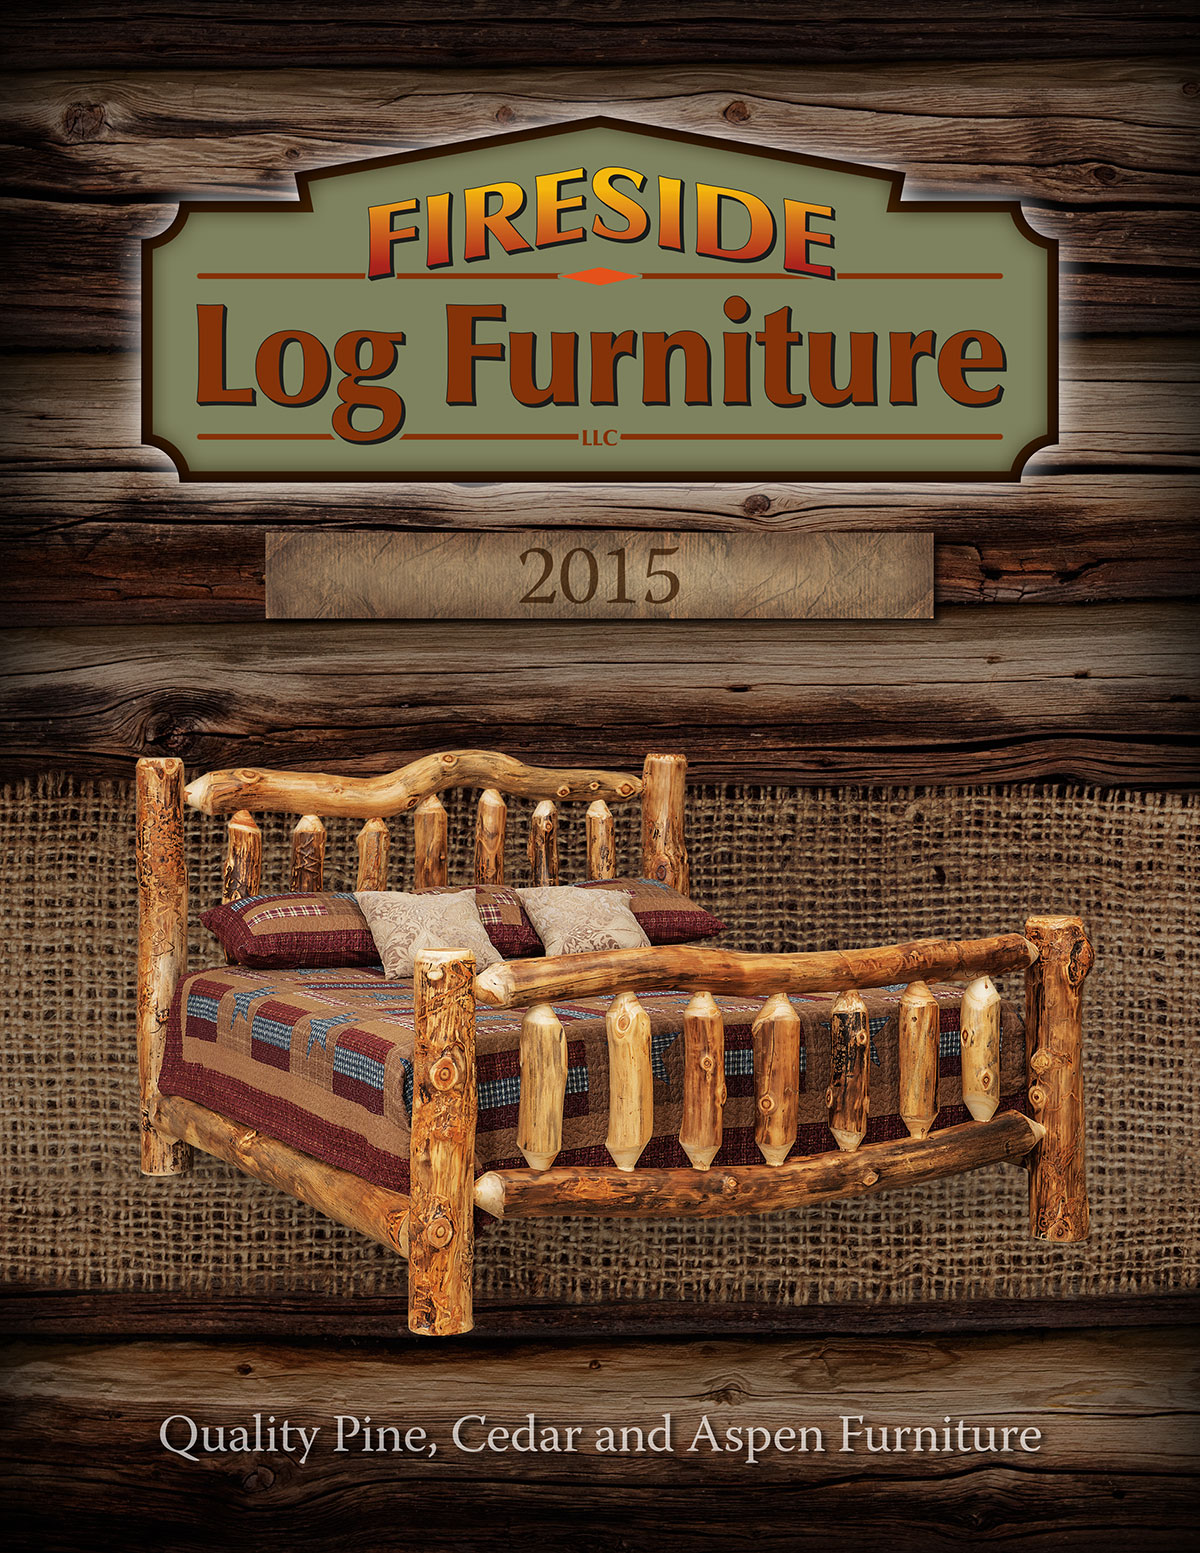 DGA Fireside Log Furniture Catalog Cover Design